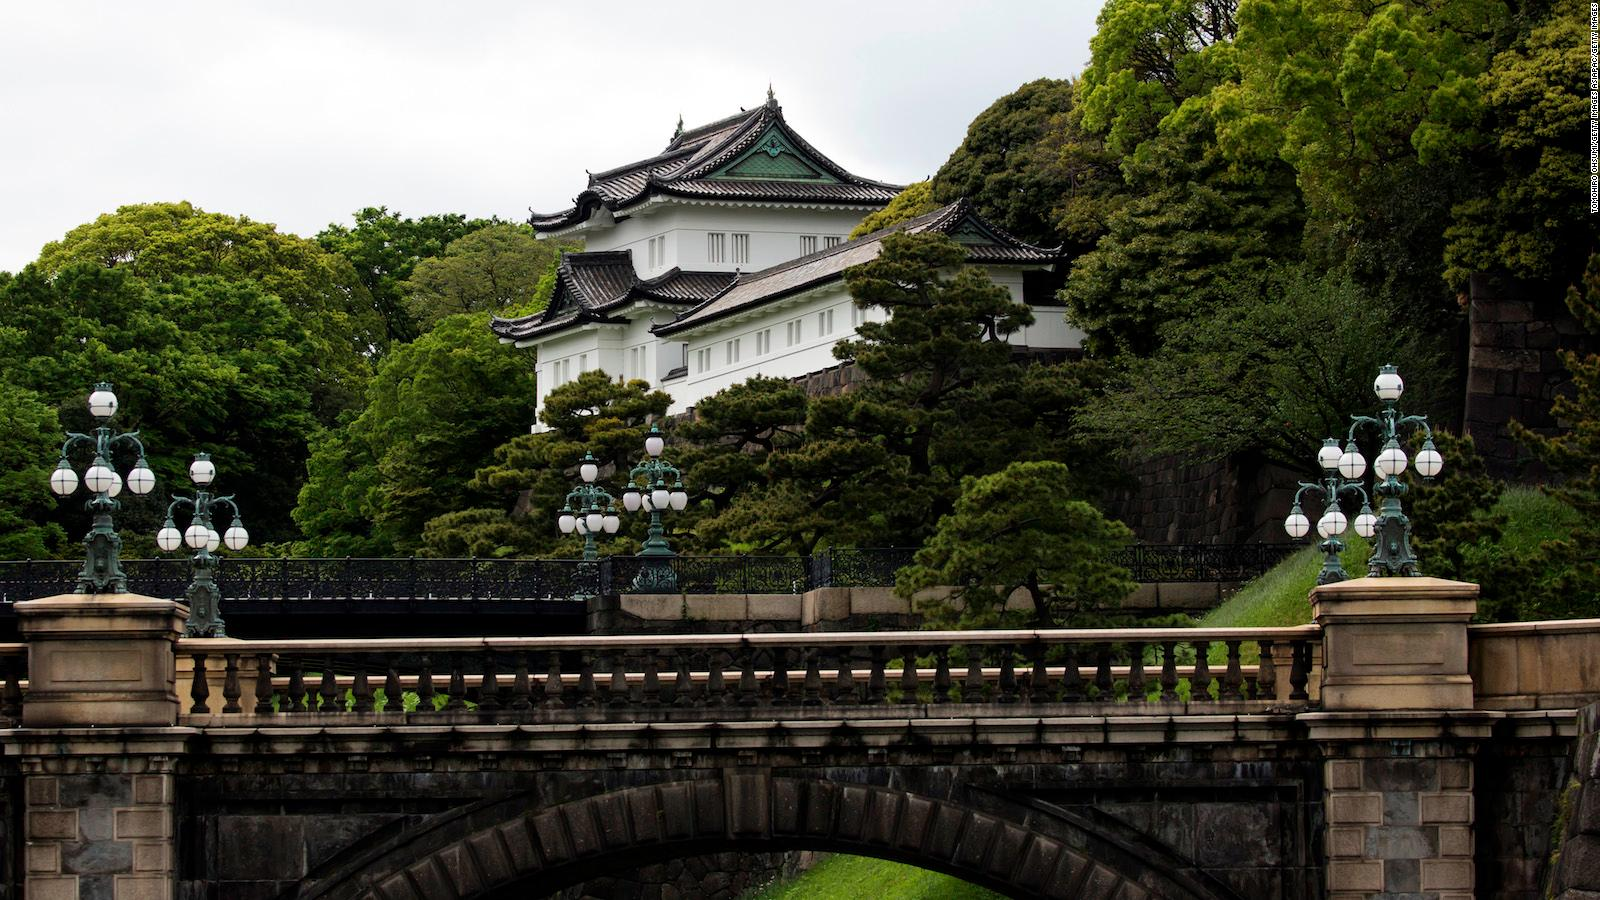 Tokyo's Imperial Palace: Your guide to visiting Japan's royal residence |  CNN Travel